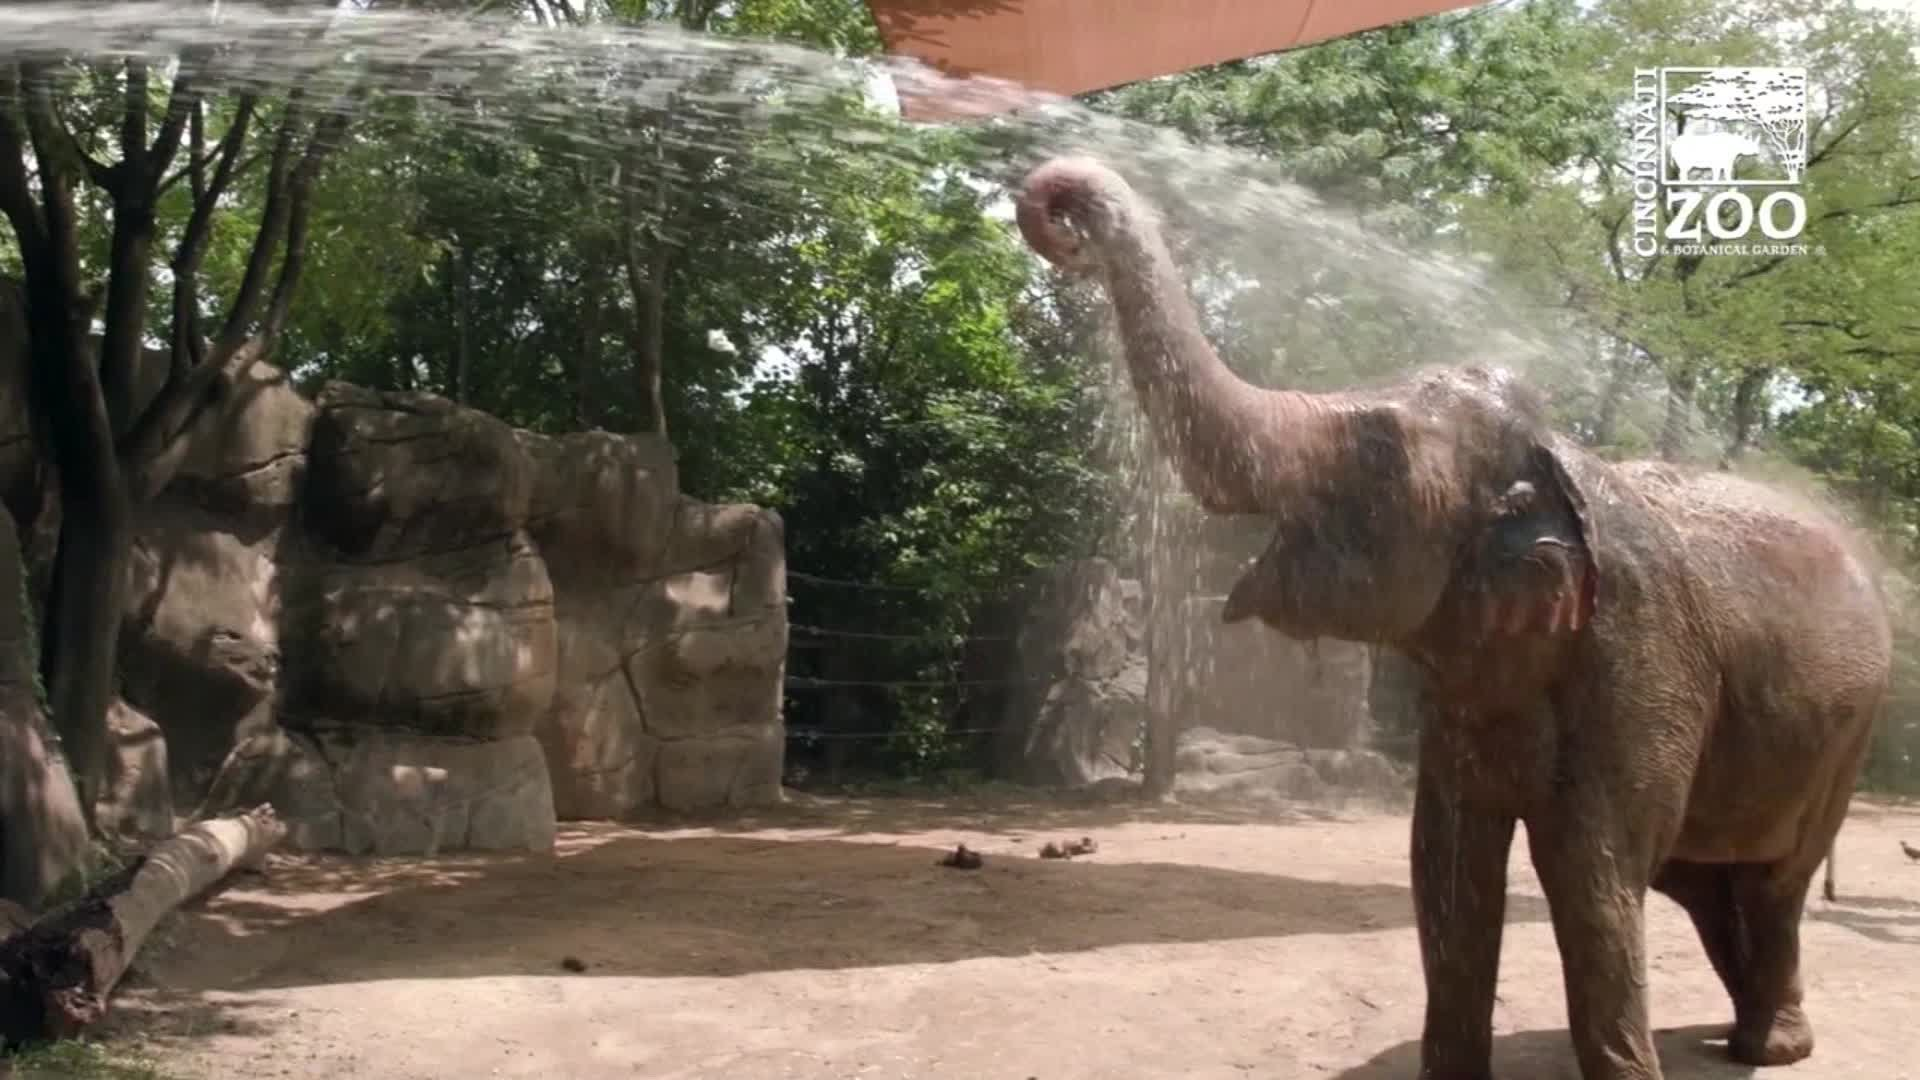 Fish popsicles, elephant hose-downs and ice blocks galore: This is how zoo animals are keeping cool during the heat wave